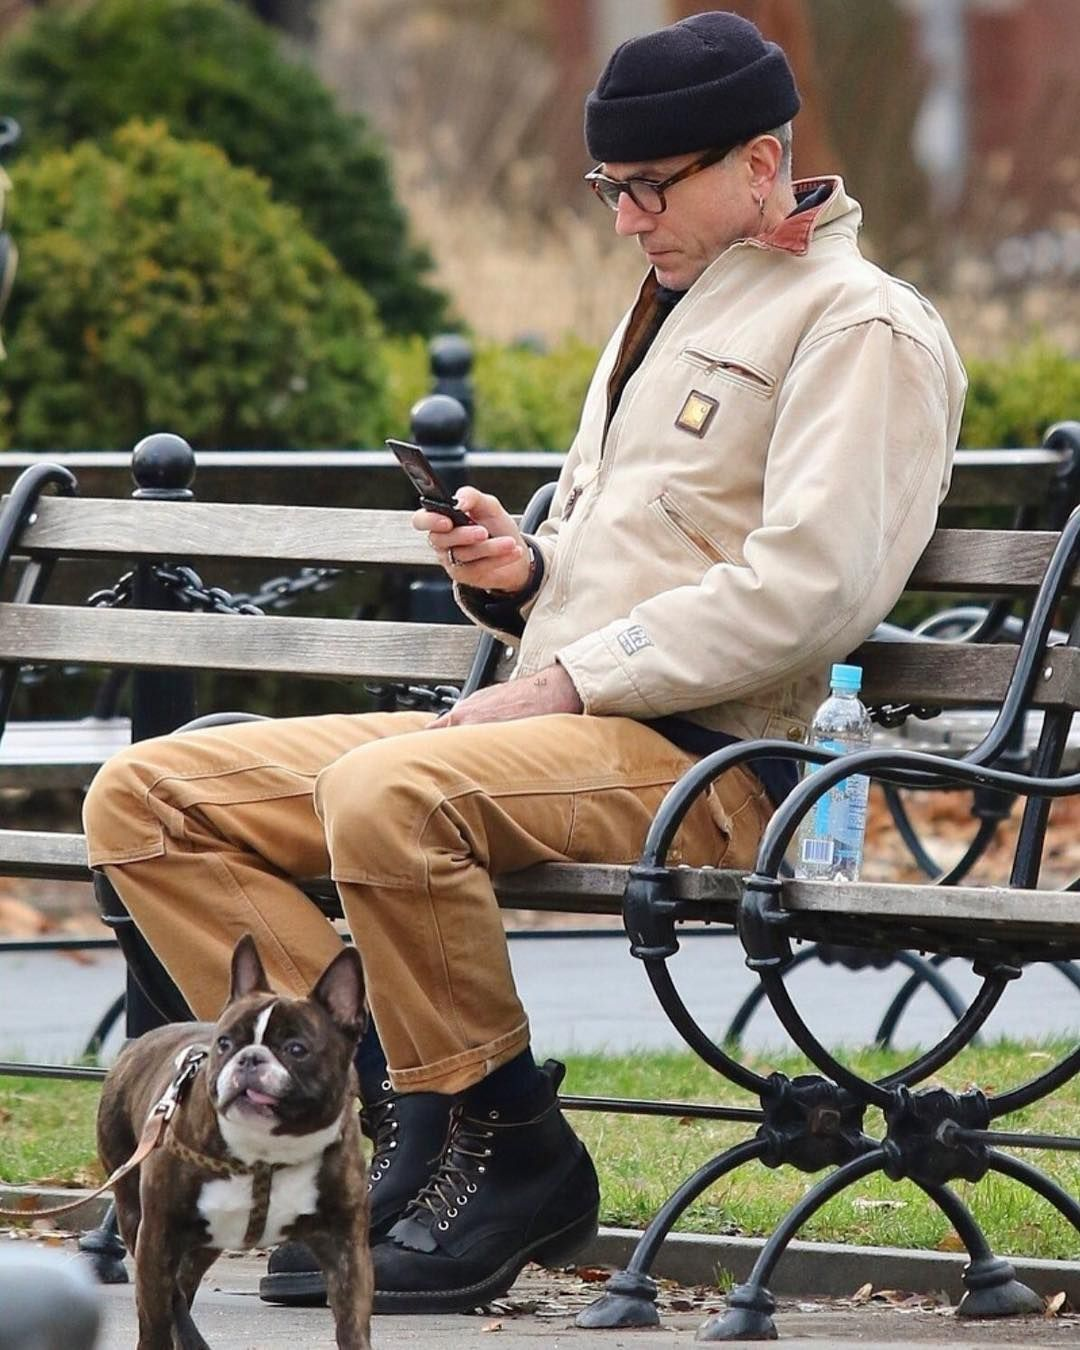 6f2e0bc72f Menswear Twitter is going crazy over these photos of Daniel Day Lewis  wearing Carhartt, drinking from a water bottle and looking every bit…